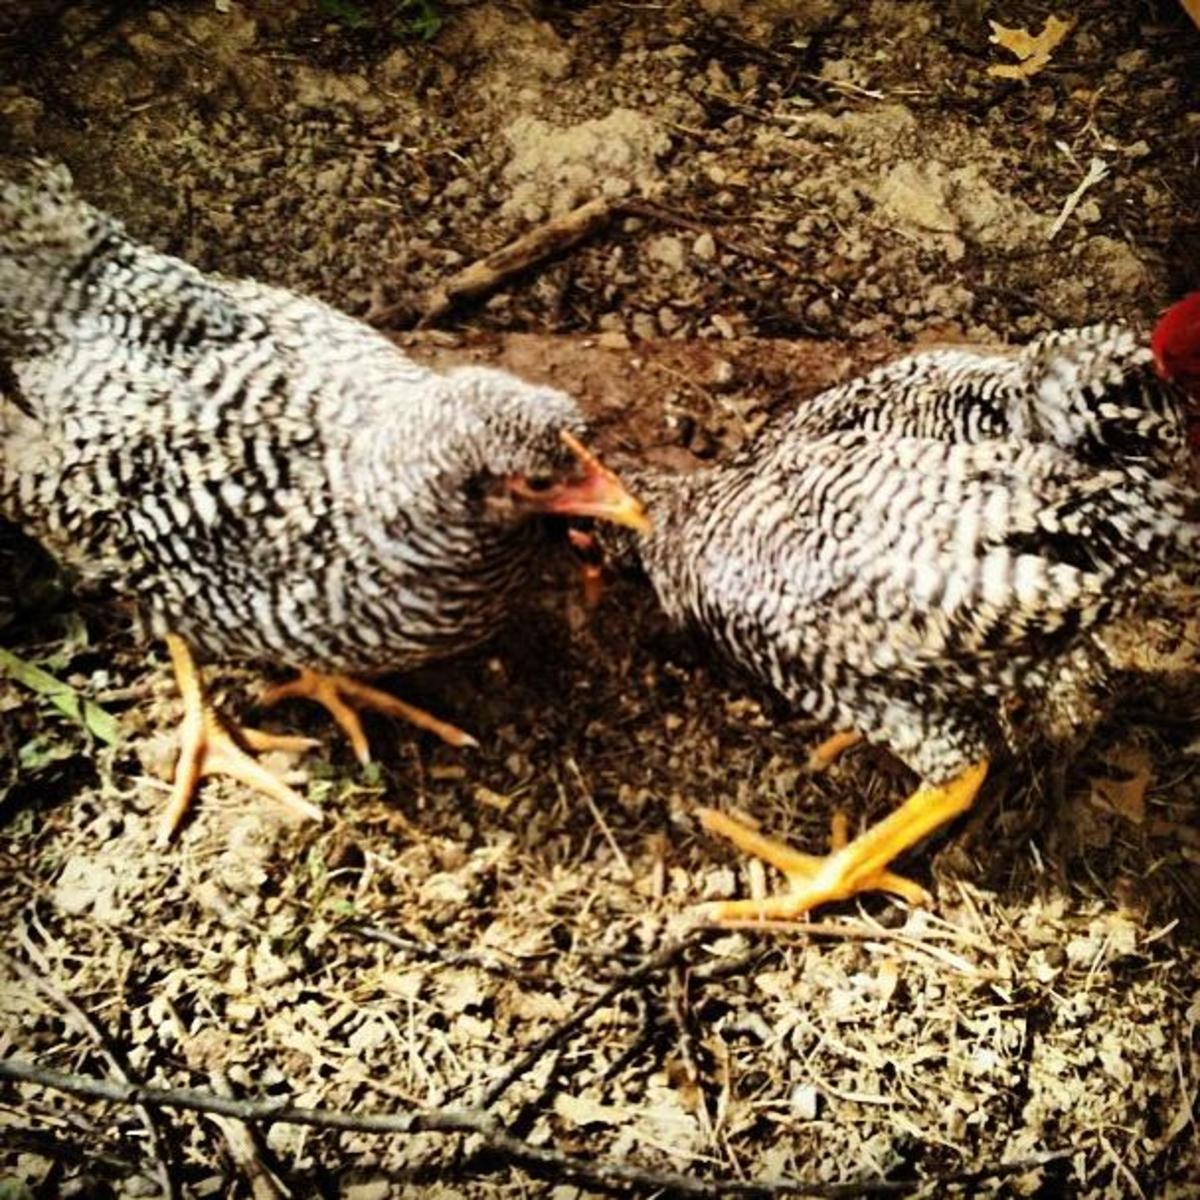 Juno and Hera are 9 week old Plymouth Barred Rock Pullets